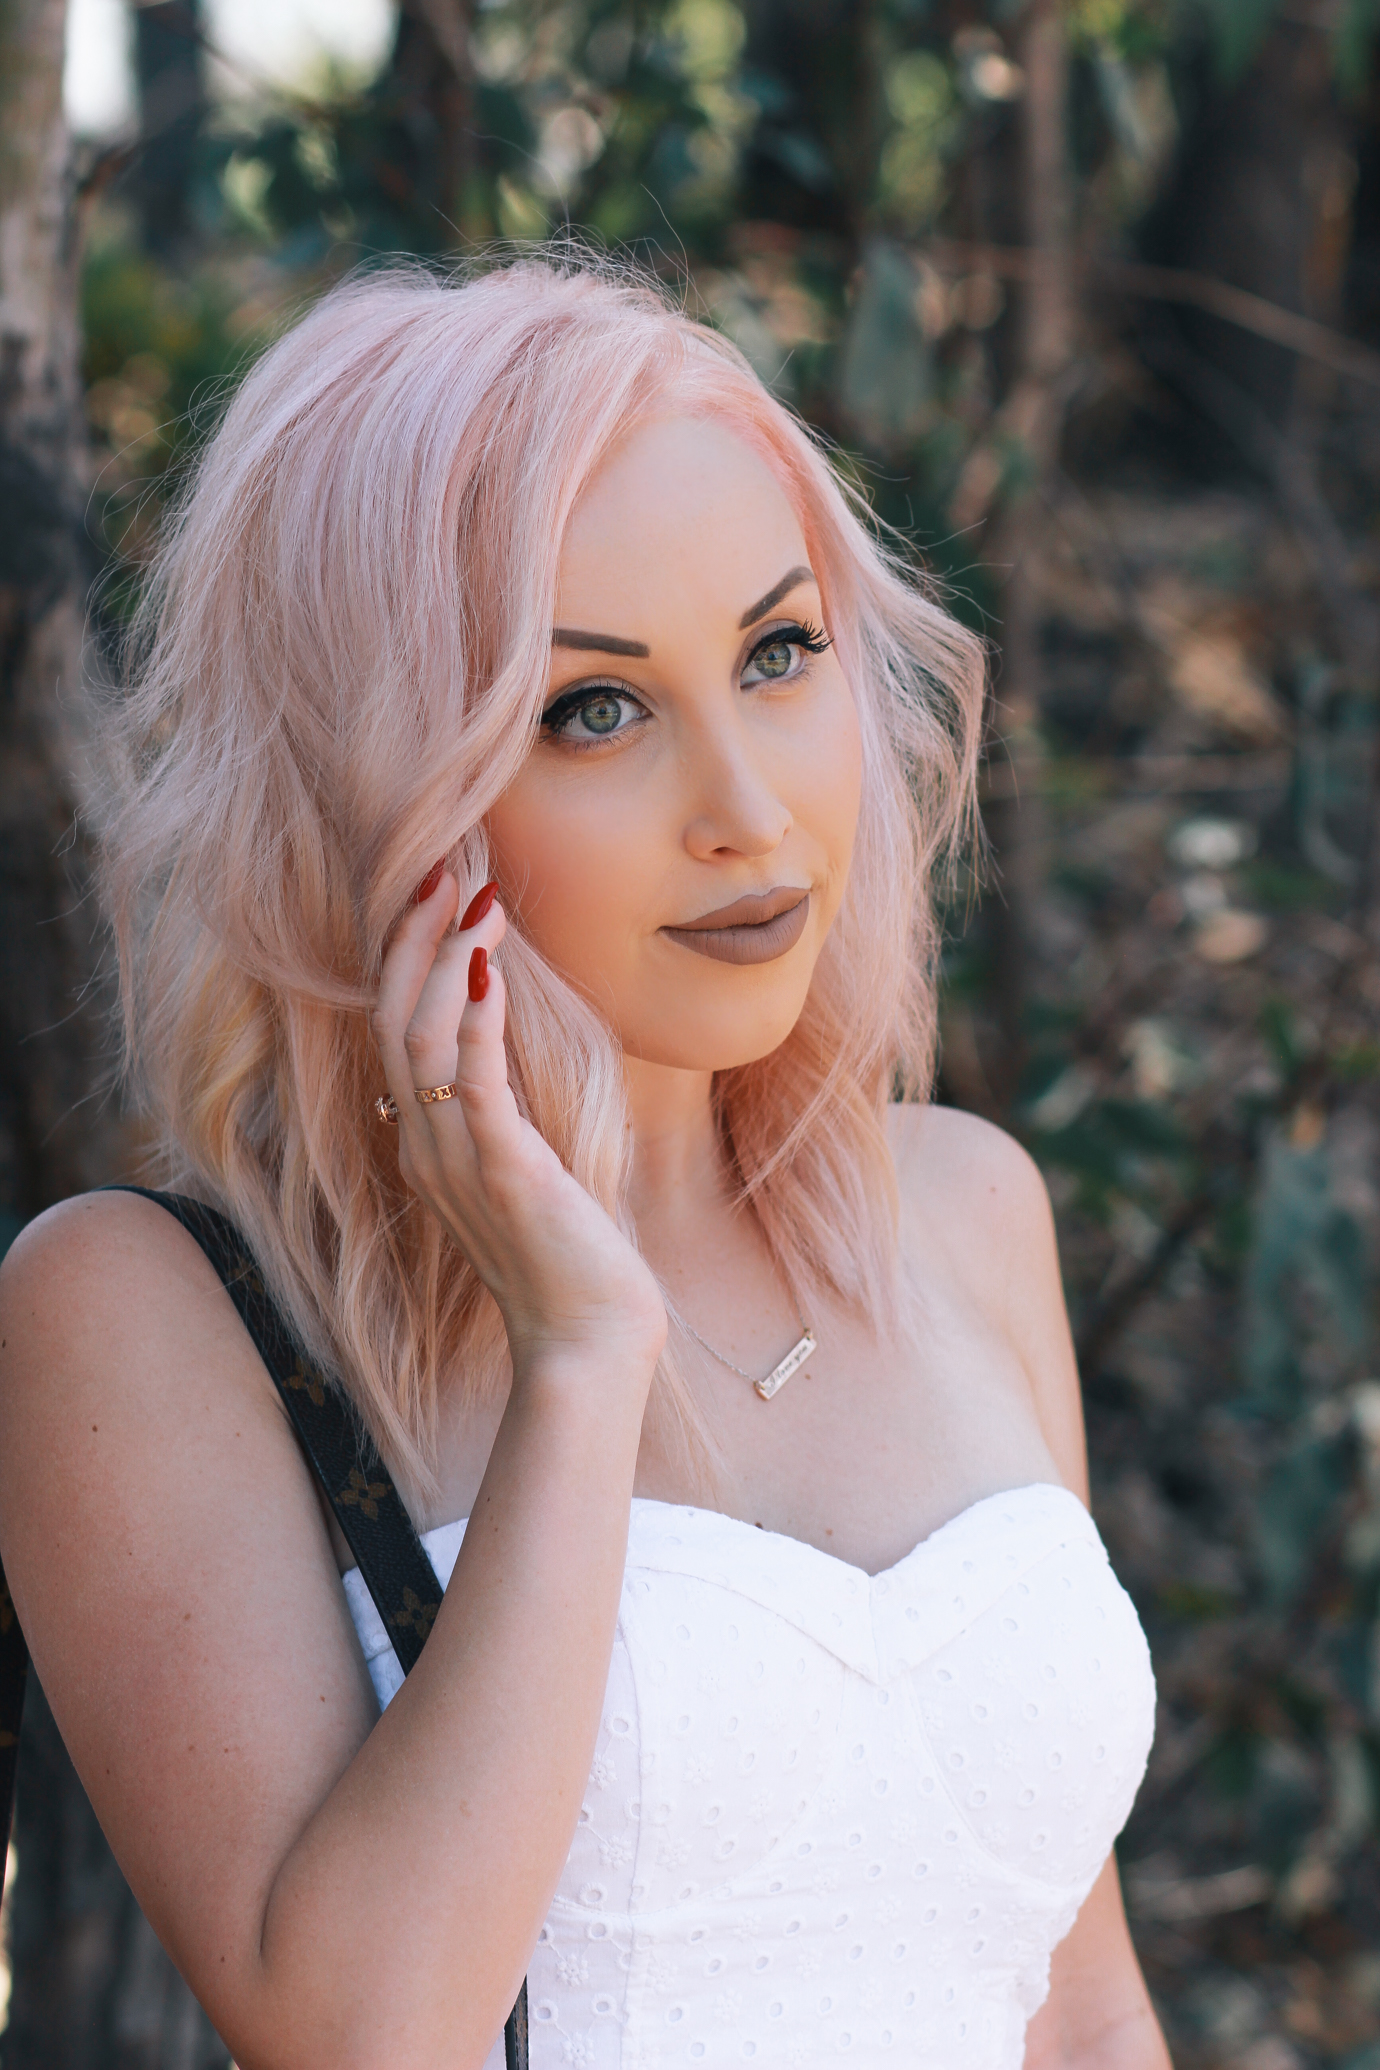 Blondie in the City   My experience getting my eyebrows microbladed   Pastel pink hair   Semi-Permanent Eyebrows